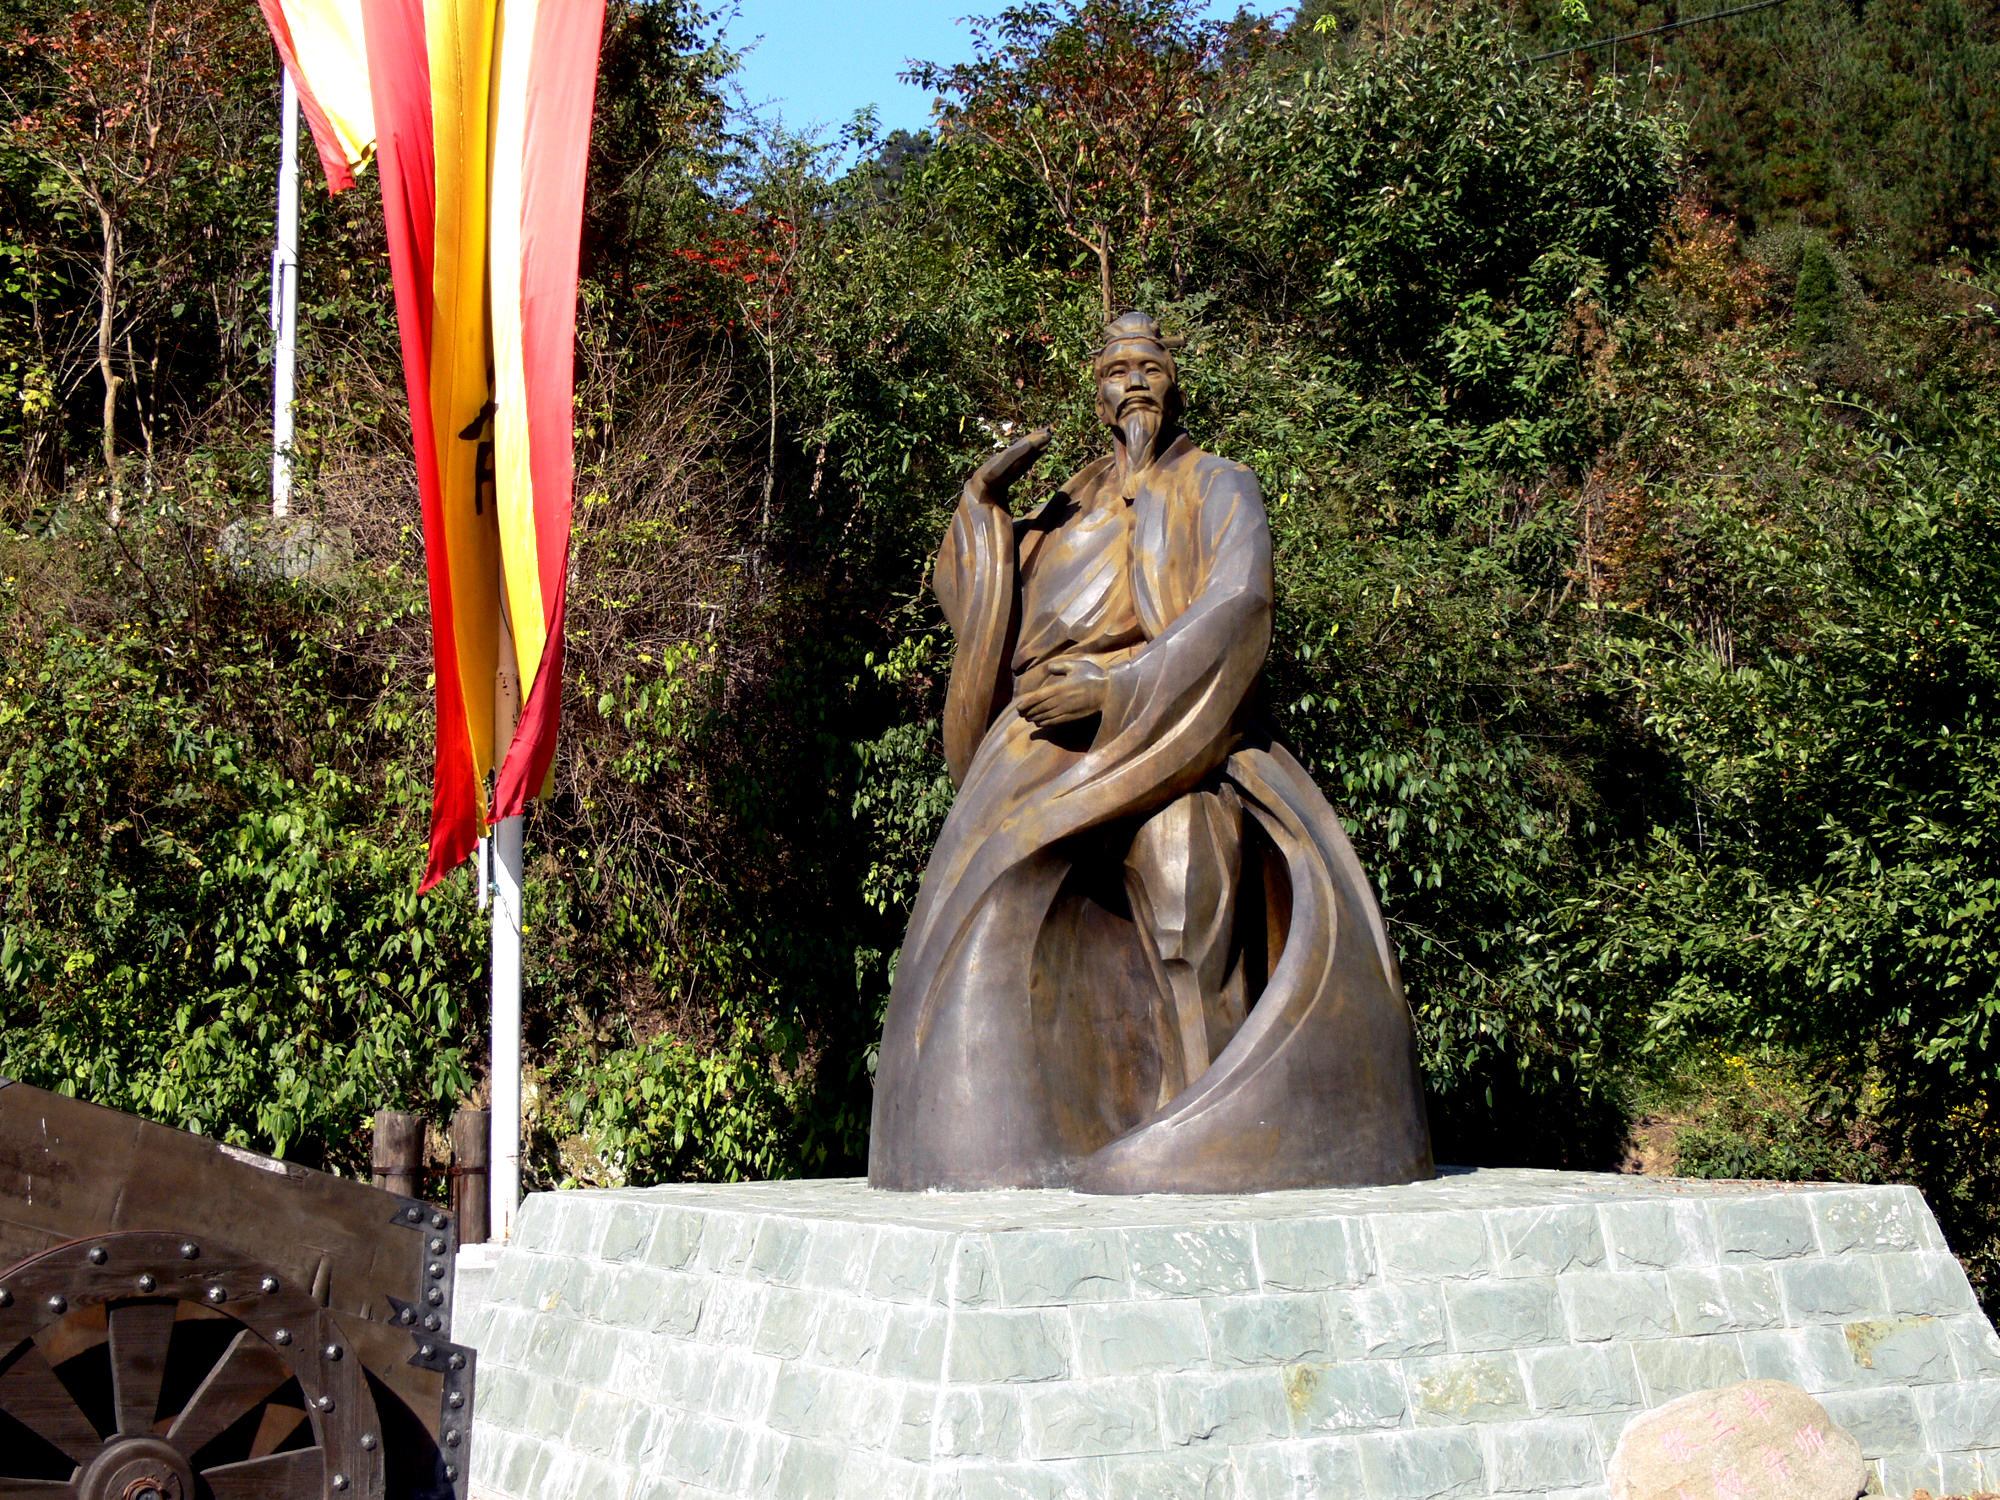 (Real life statue of Sanfeng in the real life Wudang mountains)